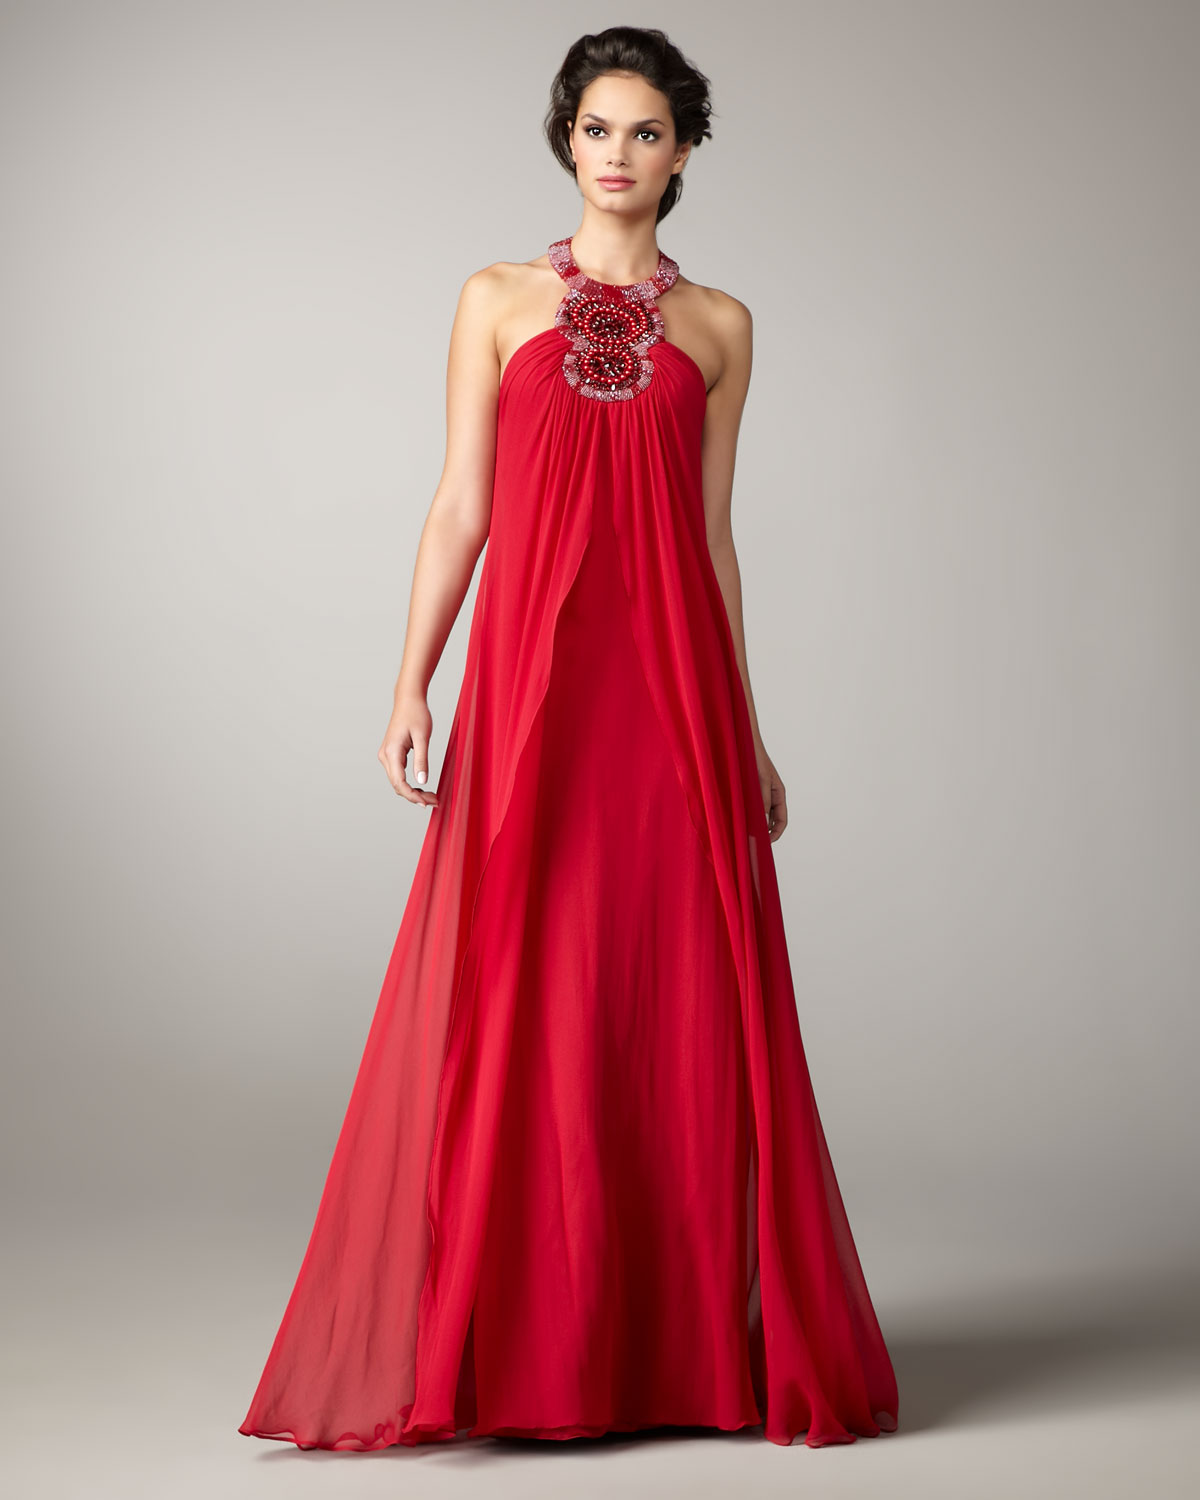 Lyst - Aidan Mattox Beaded-halter Flowy Gown in Red